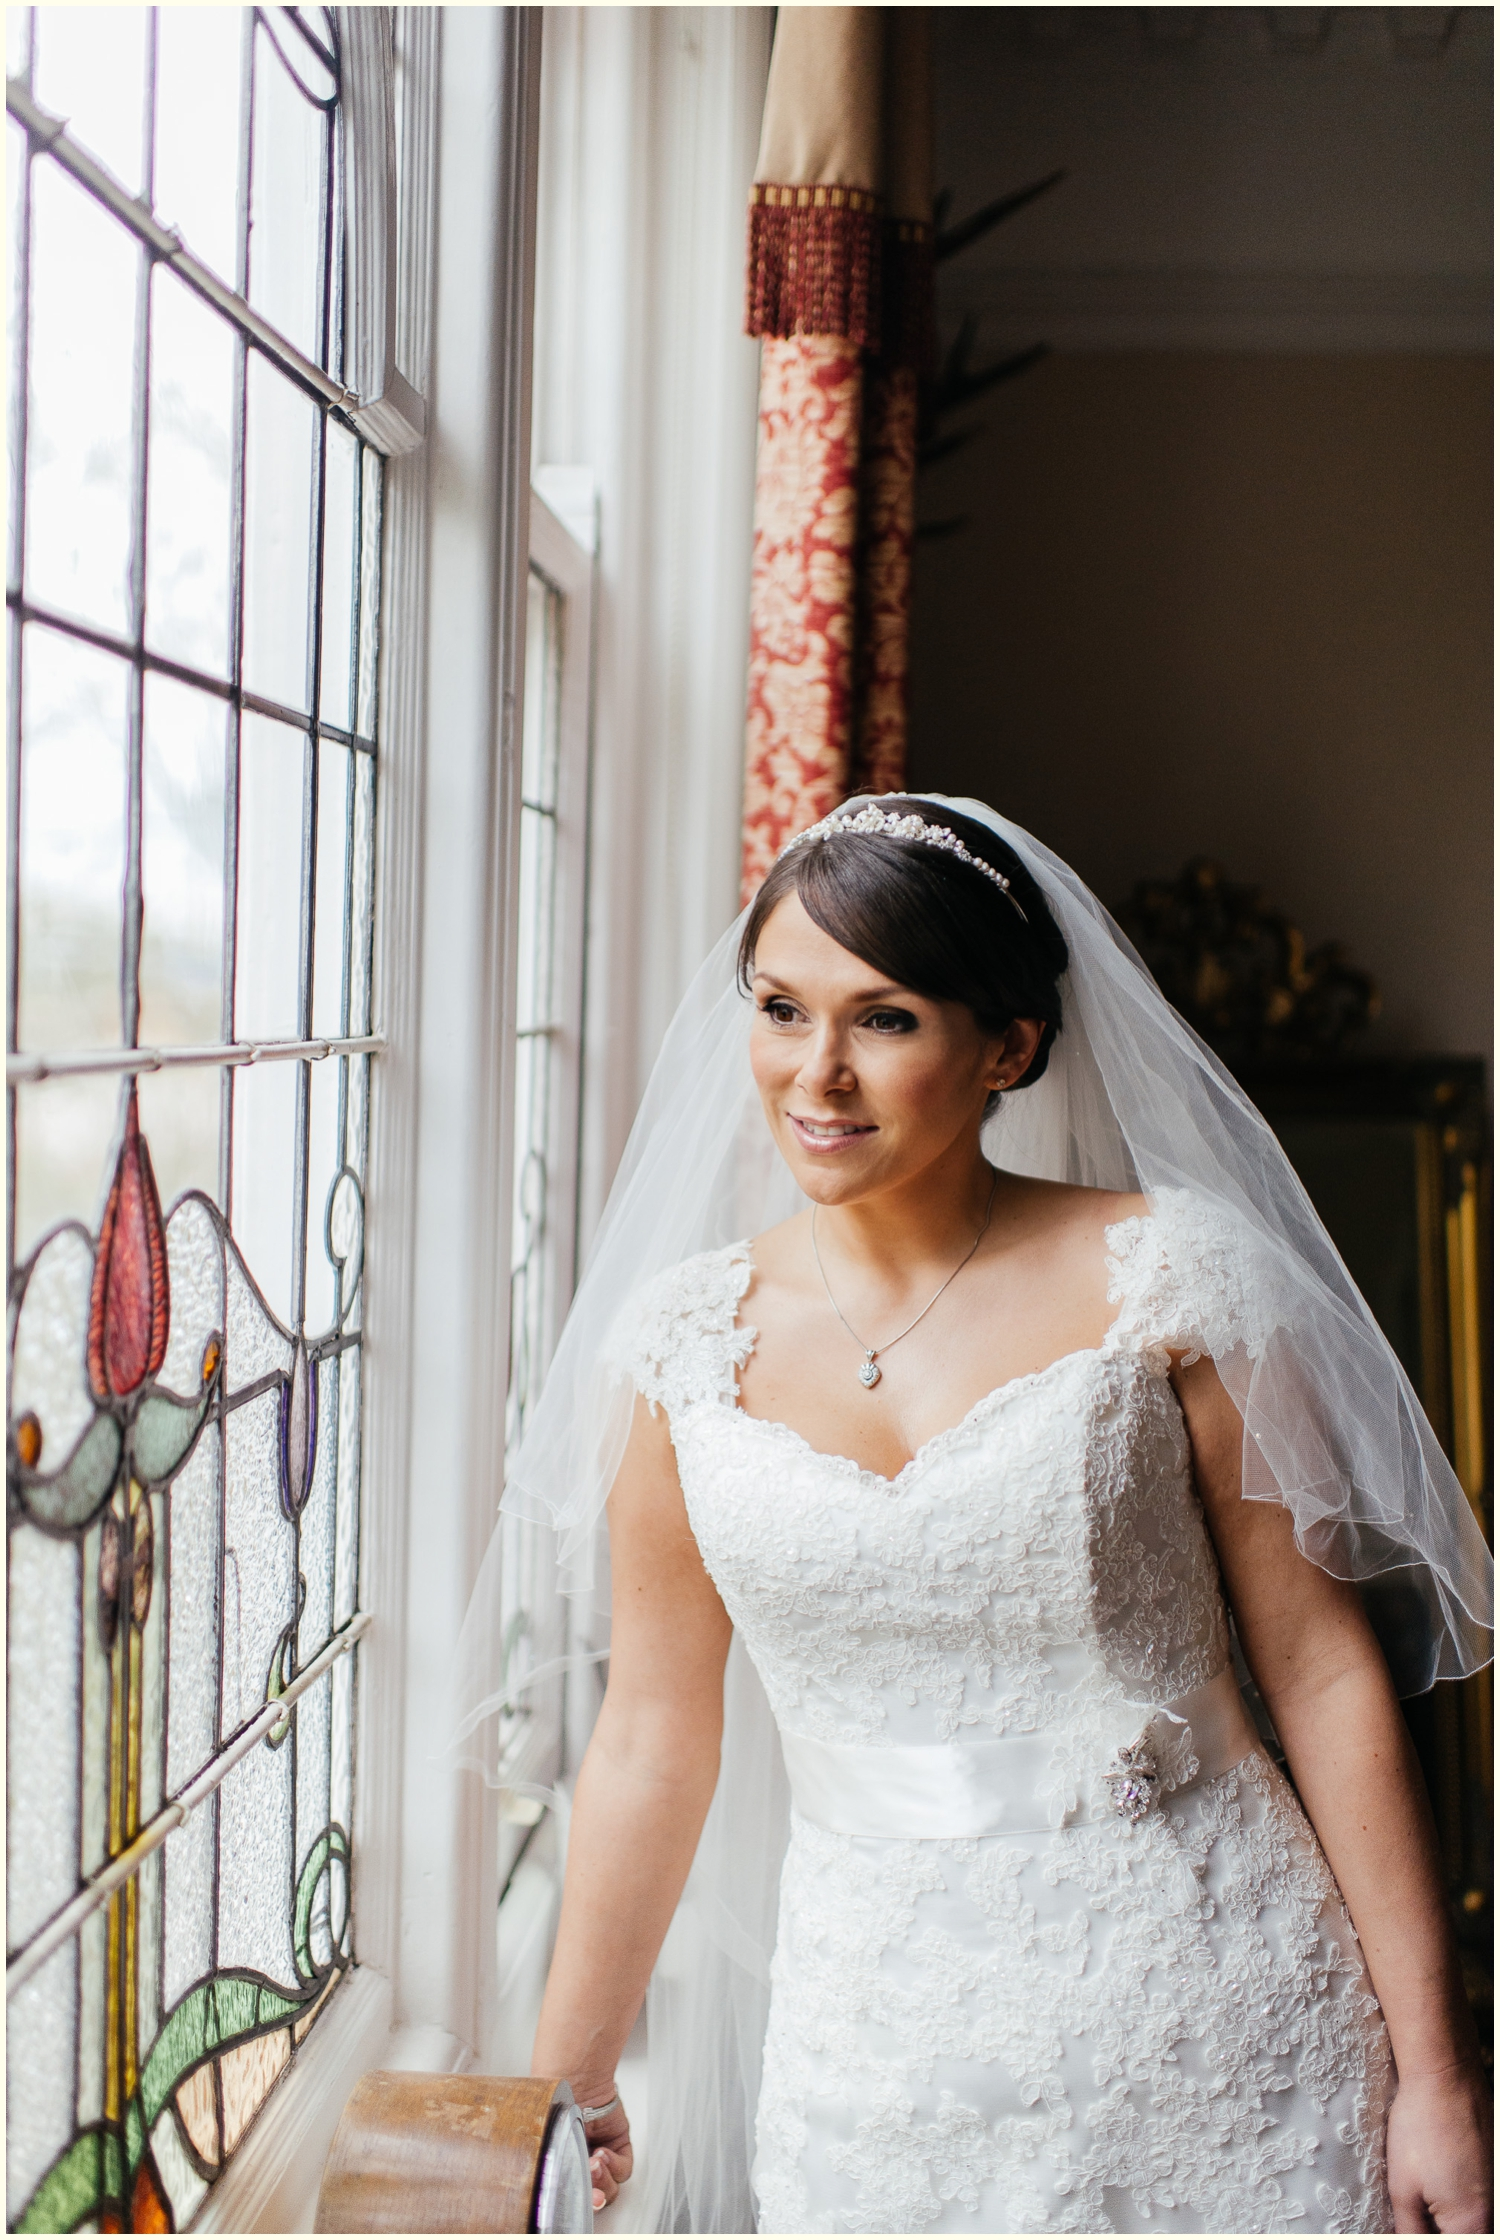 Nikki_Cooper_Photography_Rich&Sarah_Wedding_Photos_Crown_and_Sandys_Ombersley_Worcester_1016.jpg